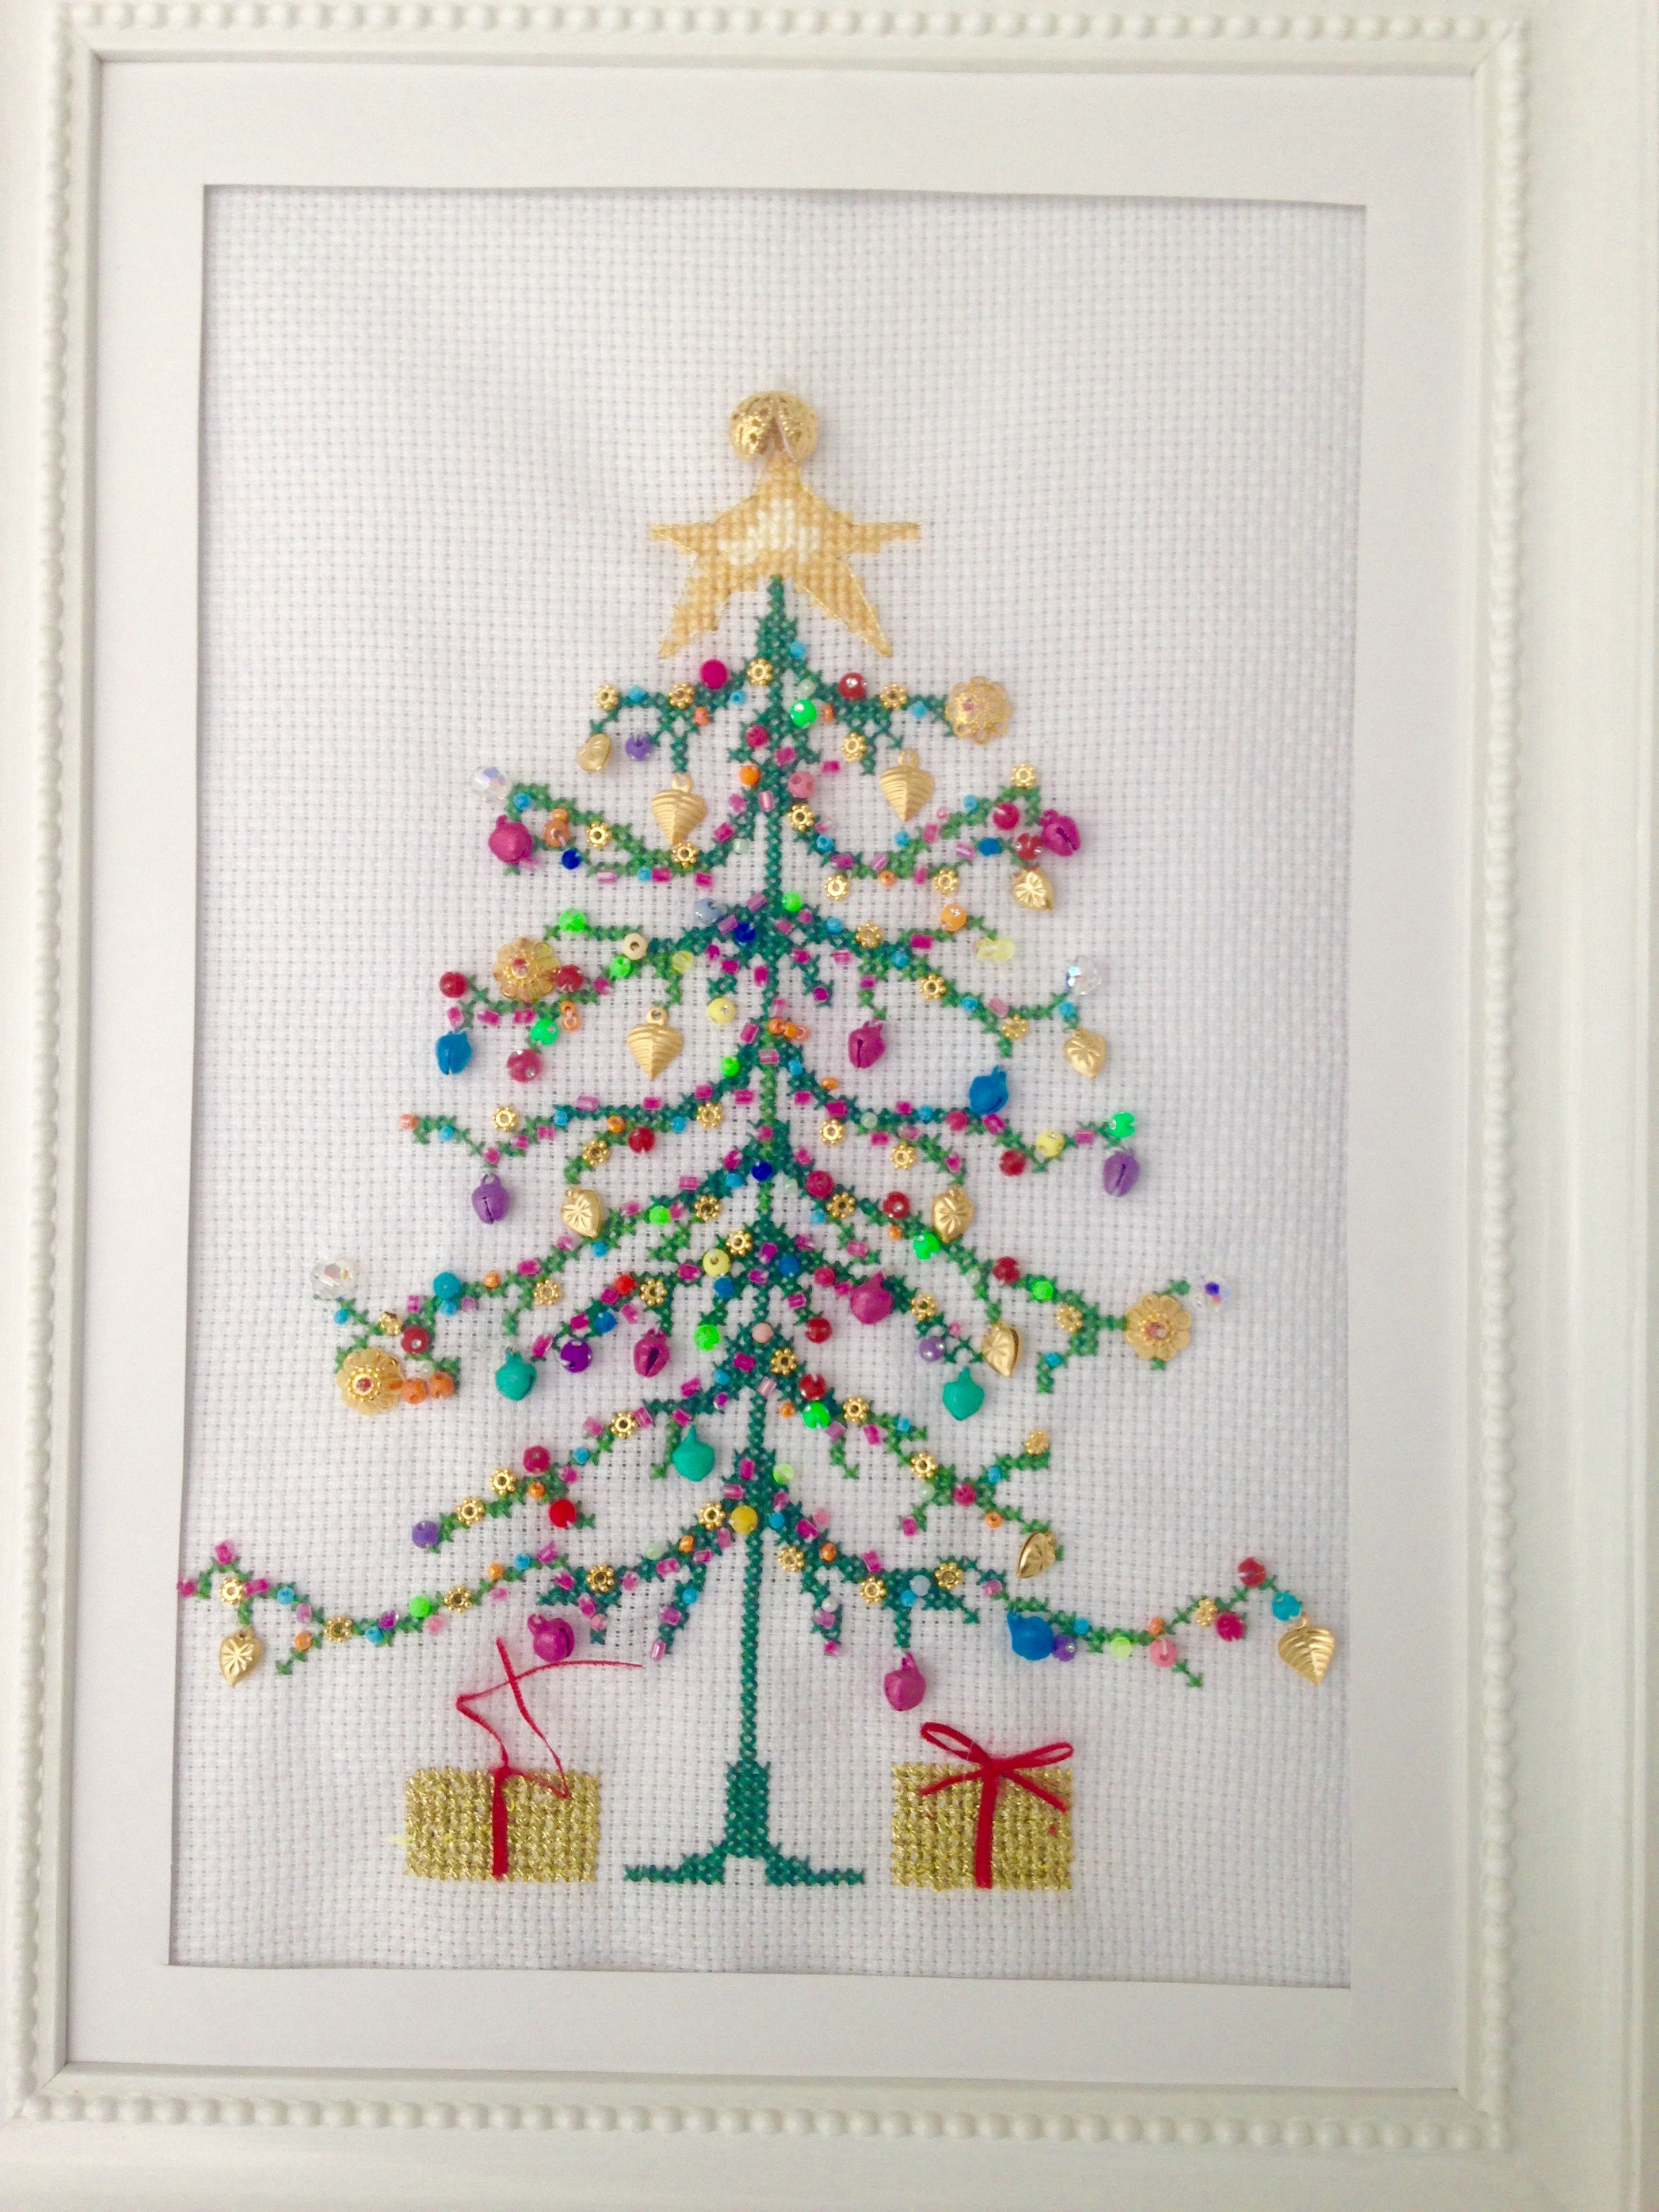 Scandi Tree Bothy Threads counted cross stitch kit 14 count parchment aida